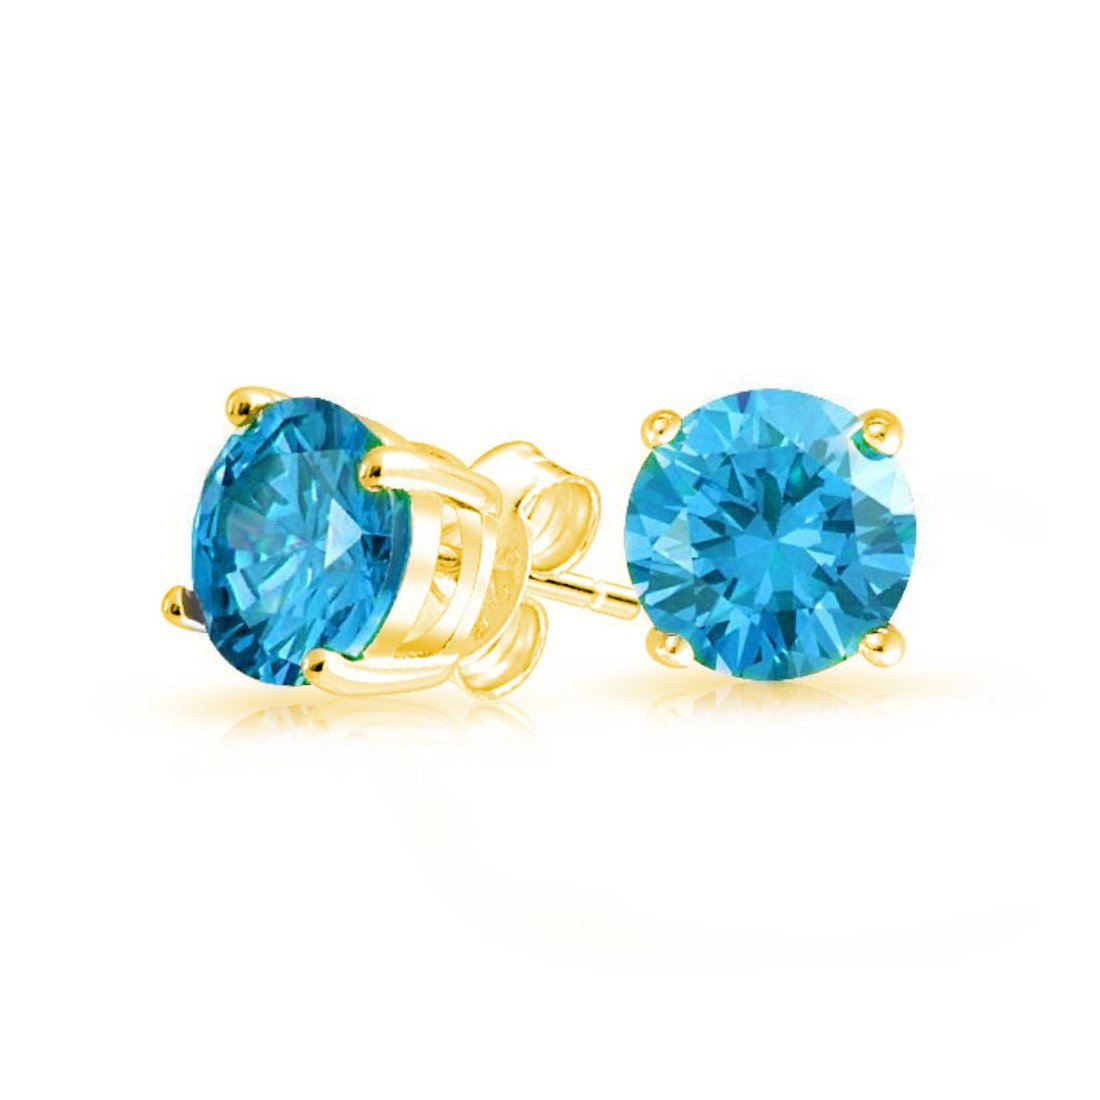 Solitaire Stud Post Earring Round Simulated Swiss Blue Topaz Yellow Tone Plated 925 Sterling Silver